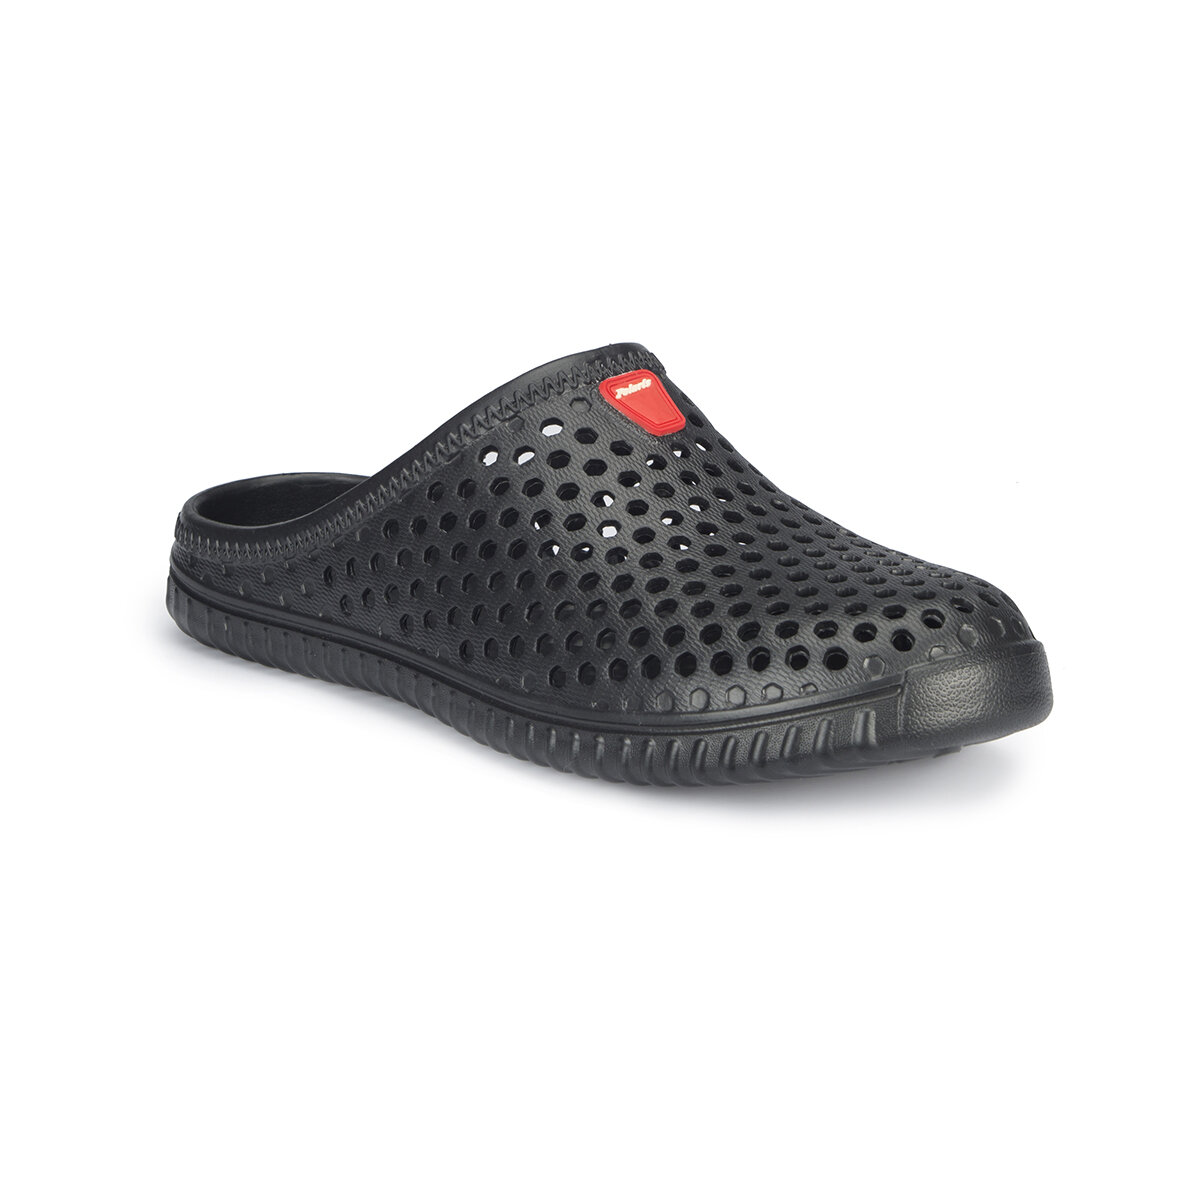 FLO 81.452258.M Black Male Slippers Polaris